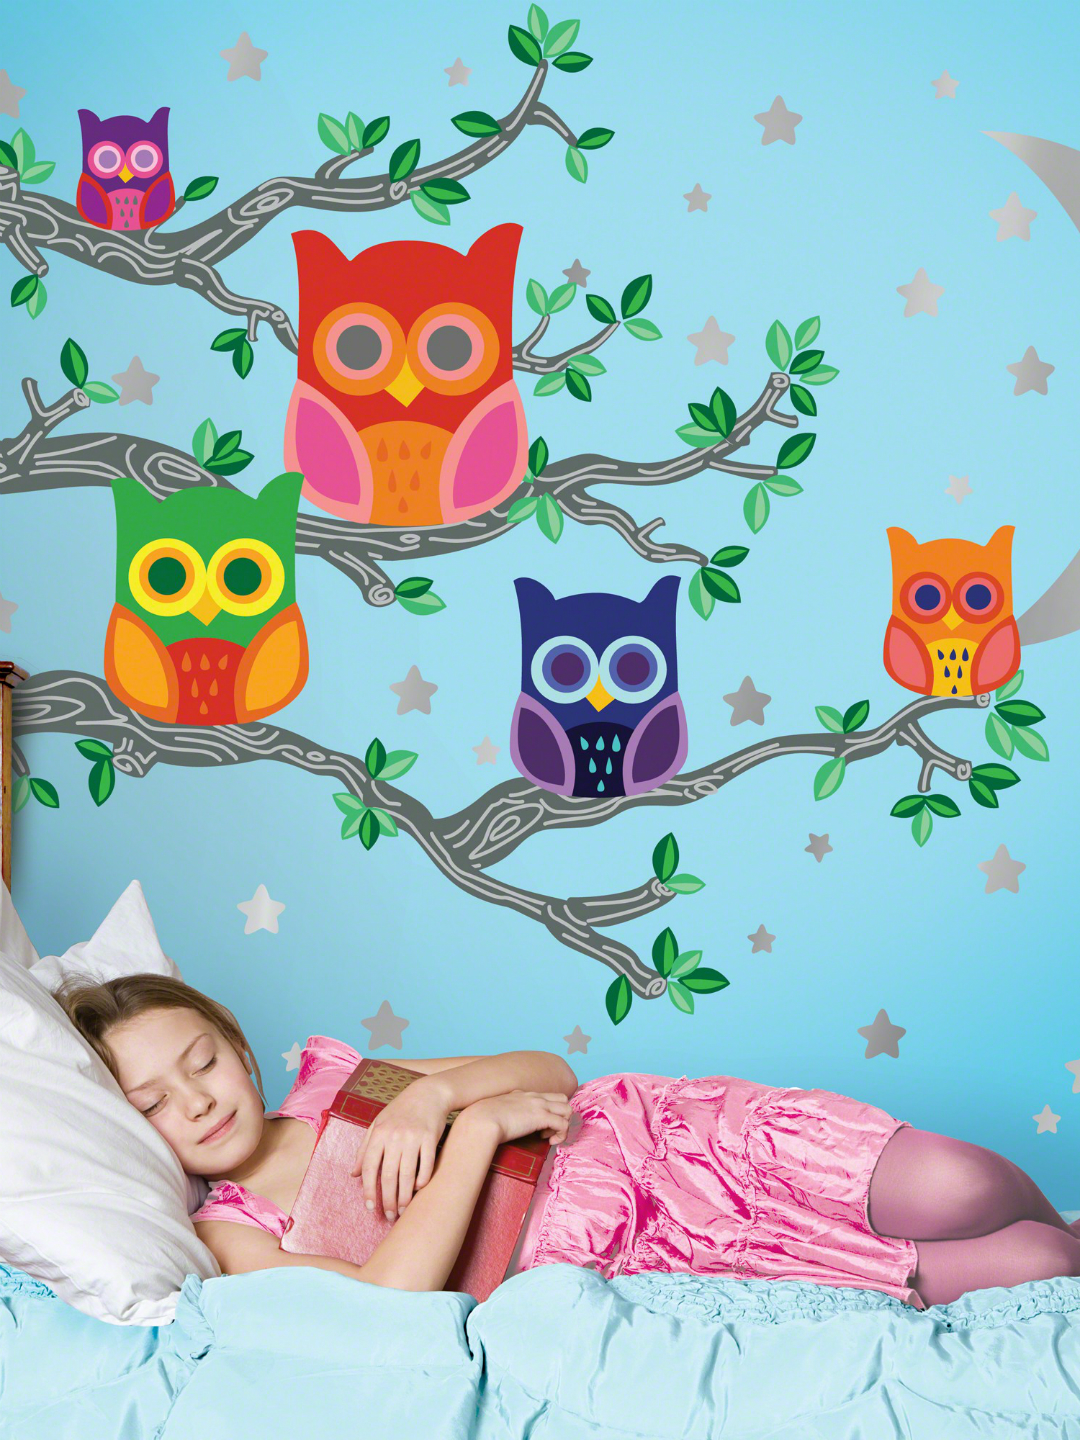 Nightly News Owl Wall Decals.  Medium_product_d3b5abdabed676fda35e31302e676bfb;  Medium_product_d11be61842096ab641a05cffb770be9c